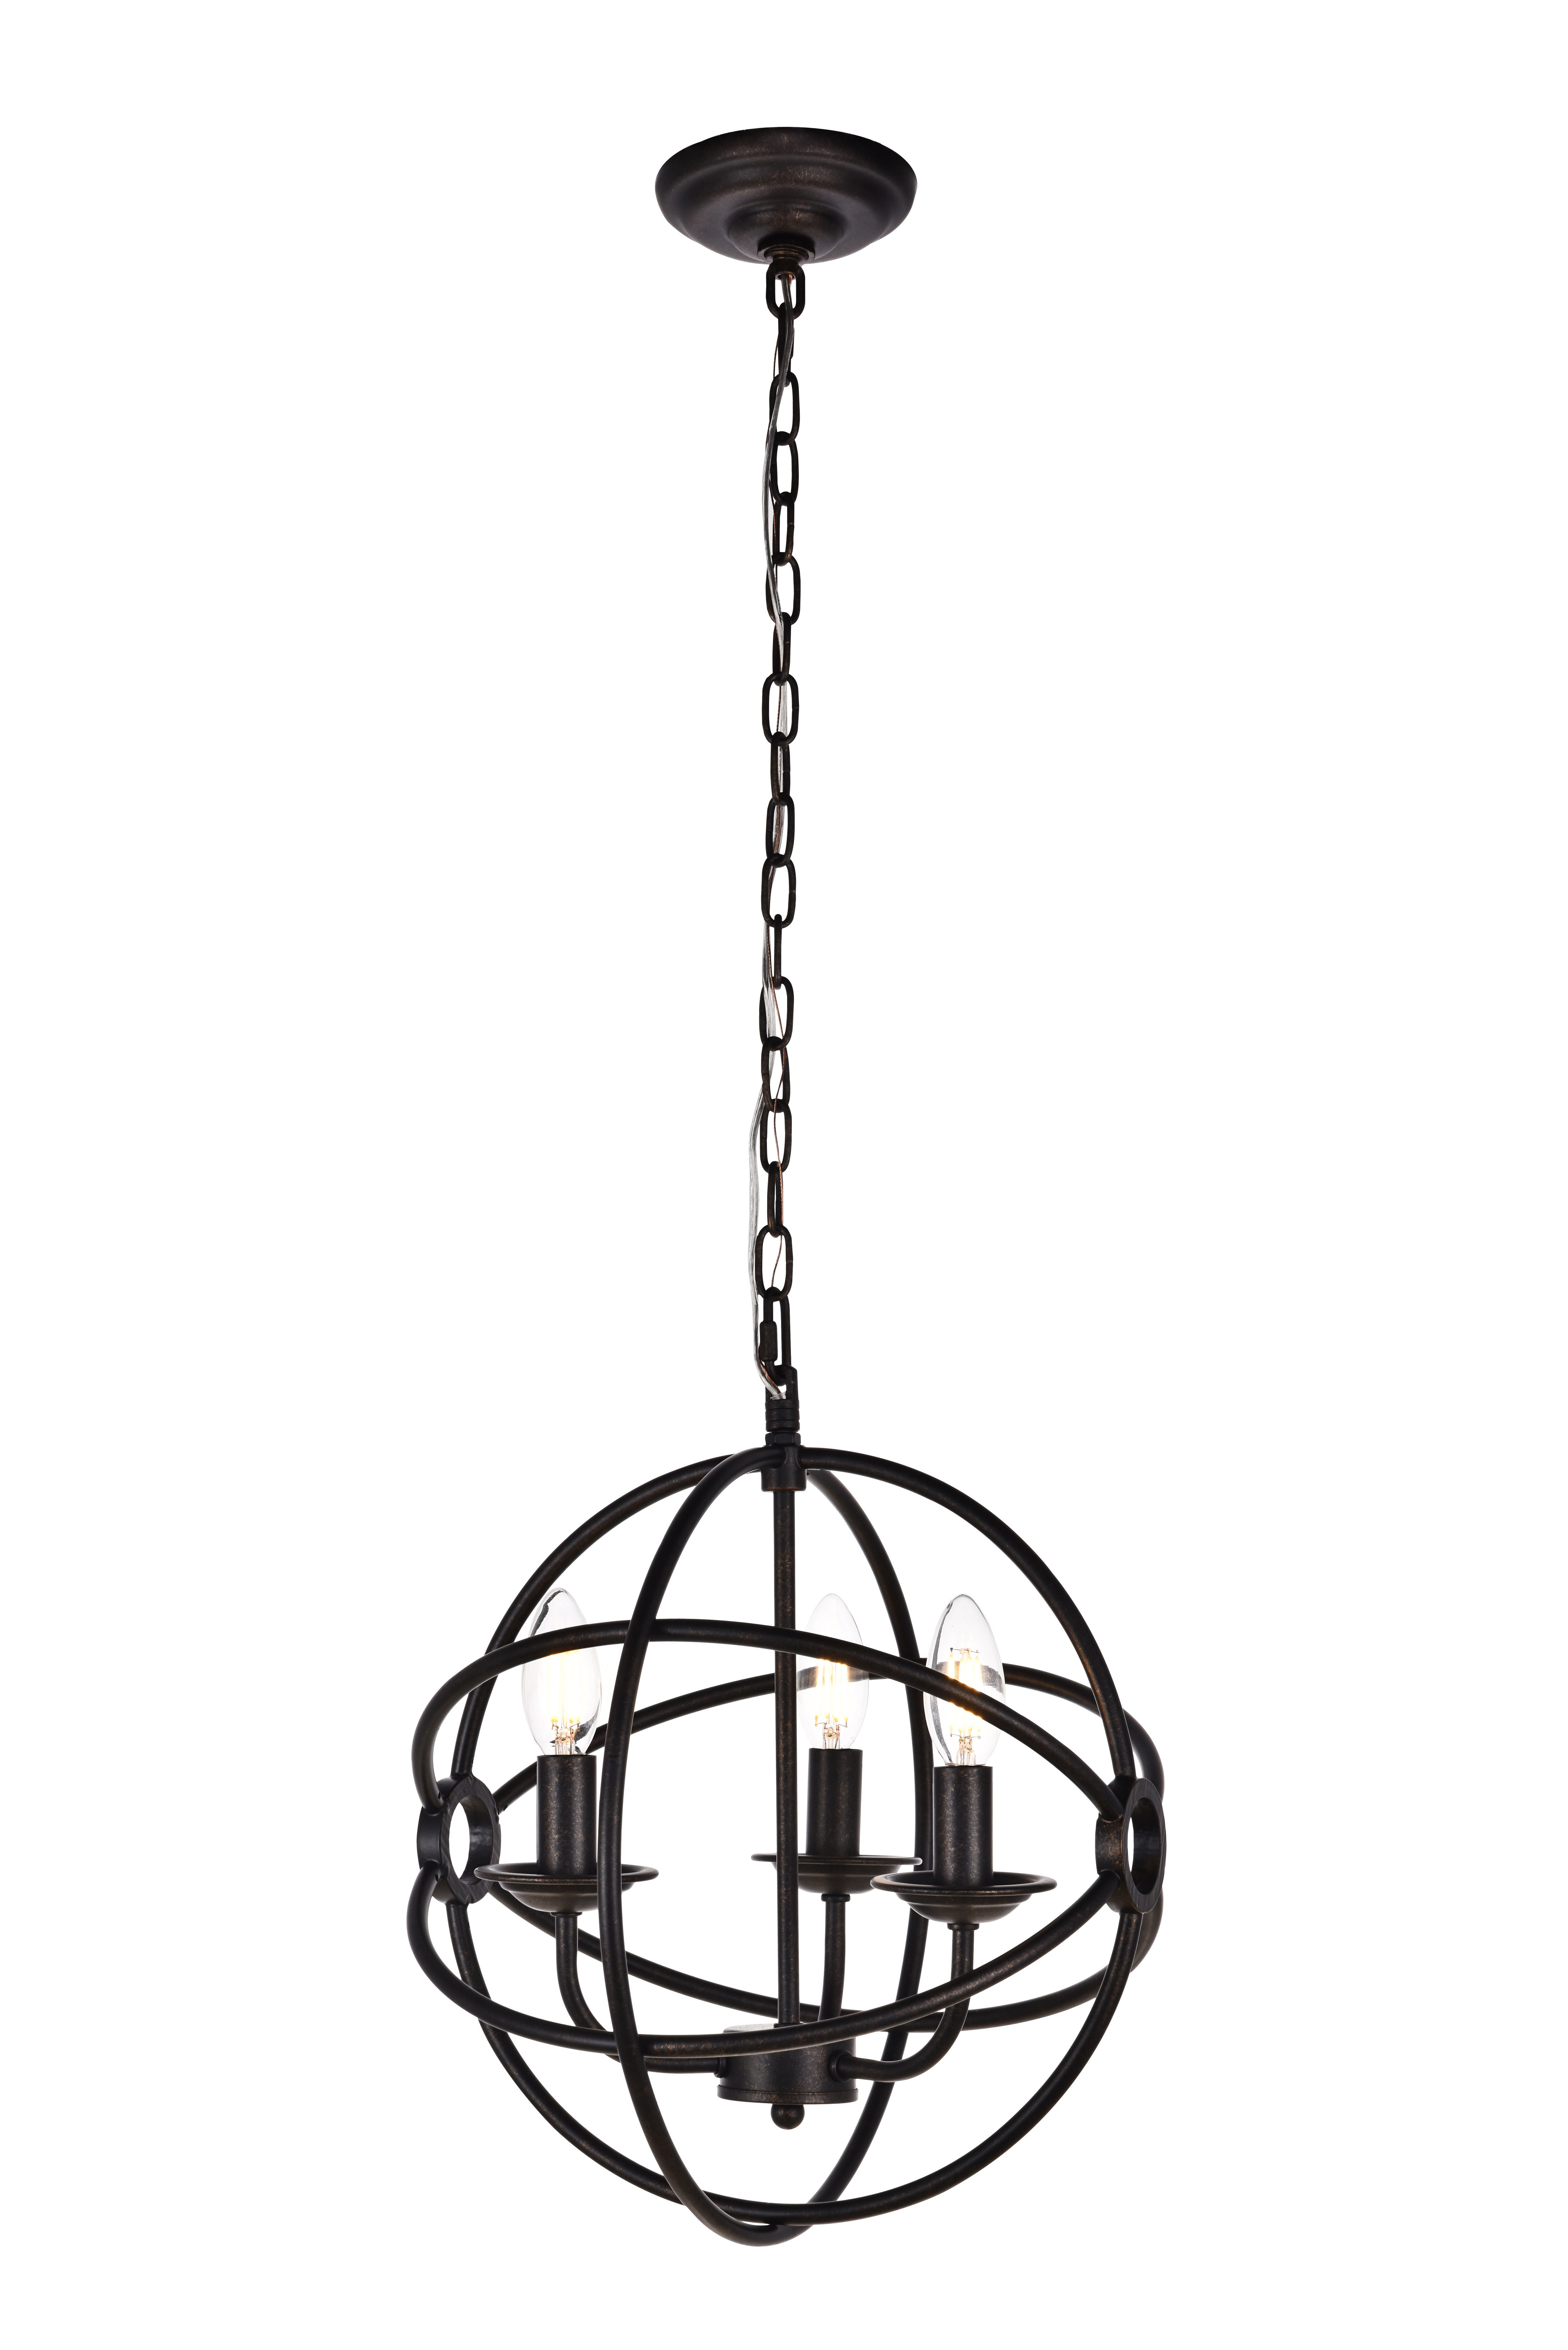 Fashionable La Barge 3 Light Globe Chandeliers For Shipststour 3 Light Globe Chandelier (Gallery 4 of 20)